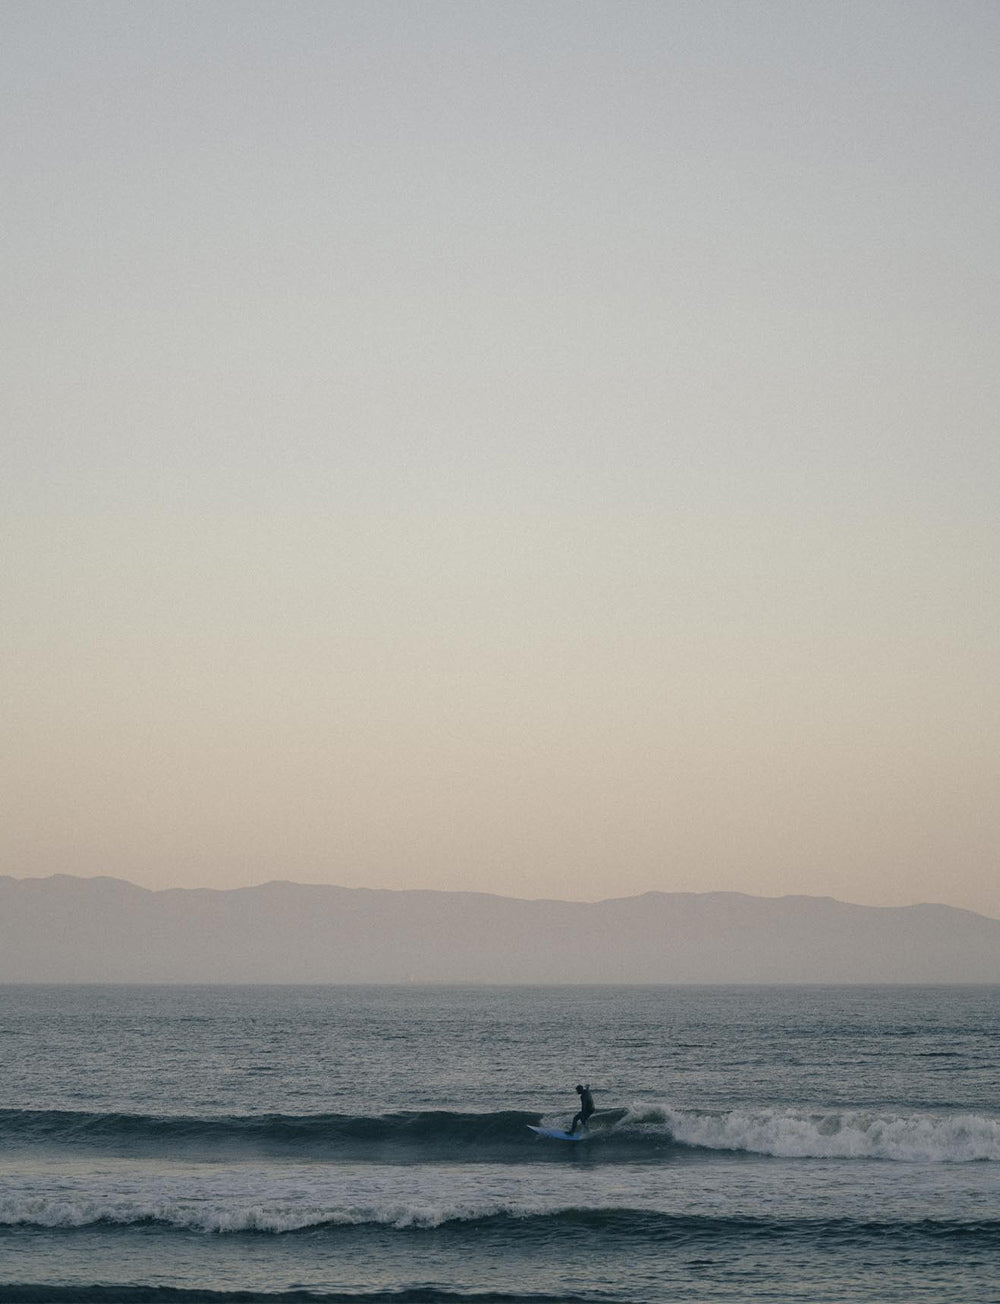 A lone surfer rides the last wave of the day with a hazy dusk horizon in the background